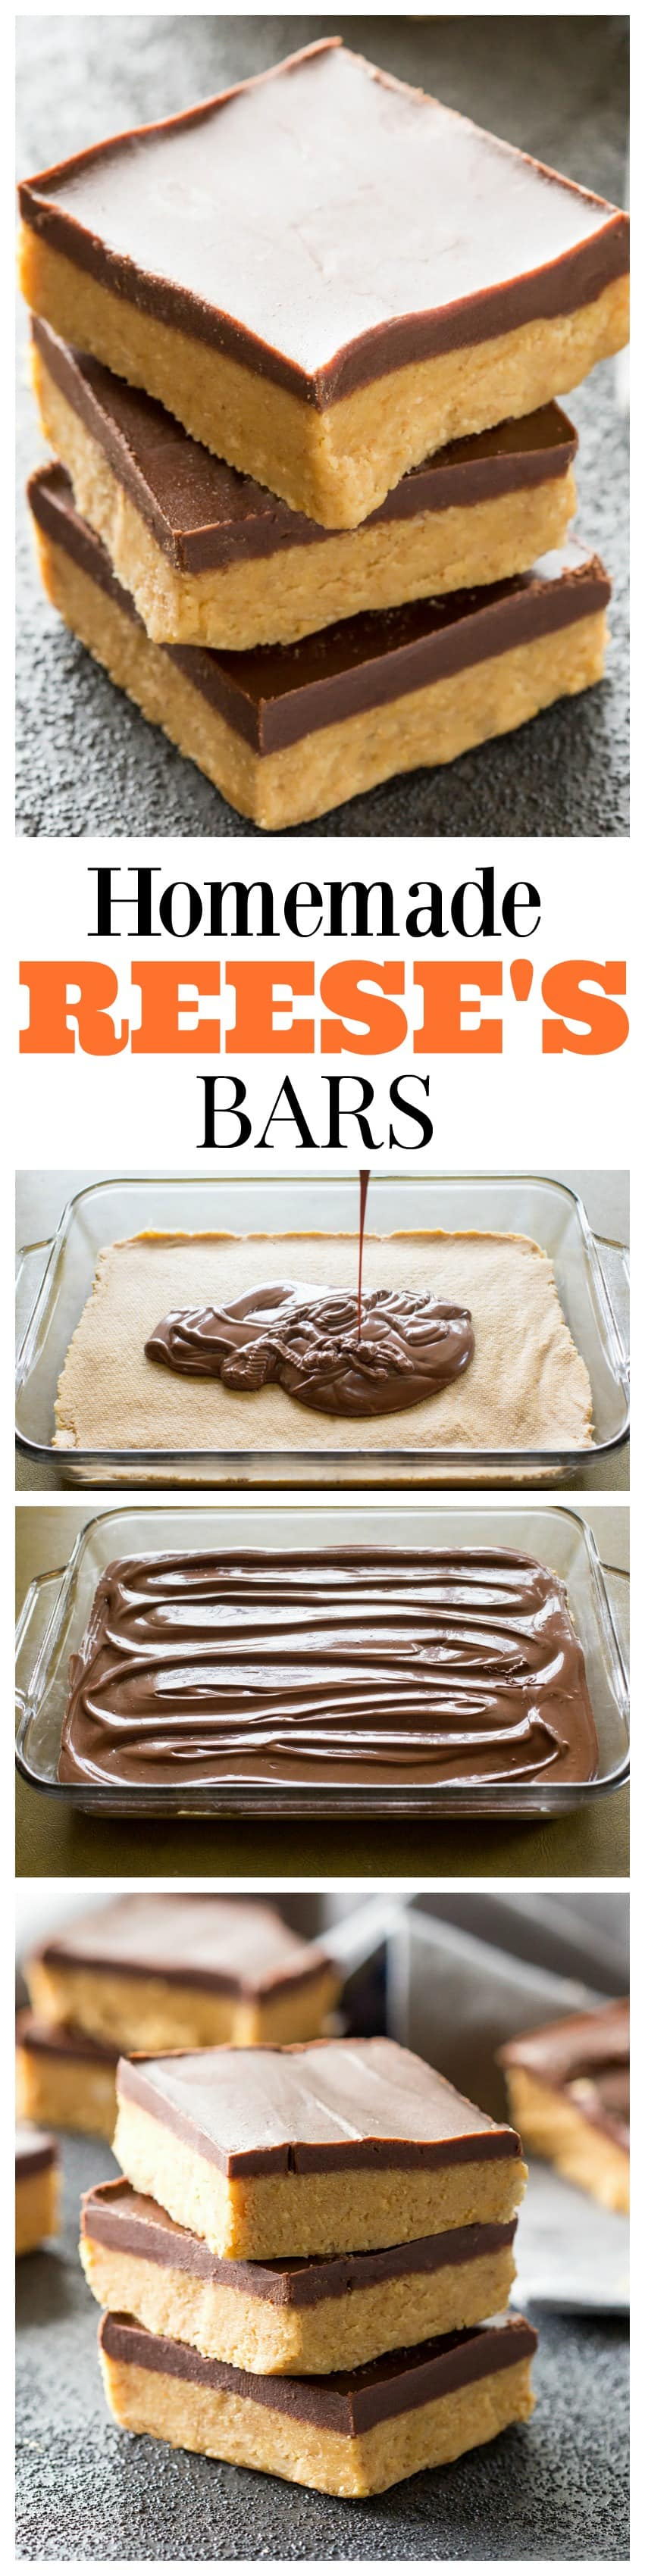 Homemade Reese's Bars - so easy you can make them at home! So good! #homemade #peanut #butter #bars #recipe #reeses #dessert